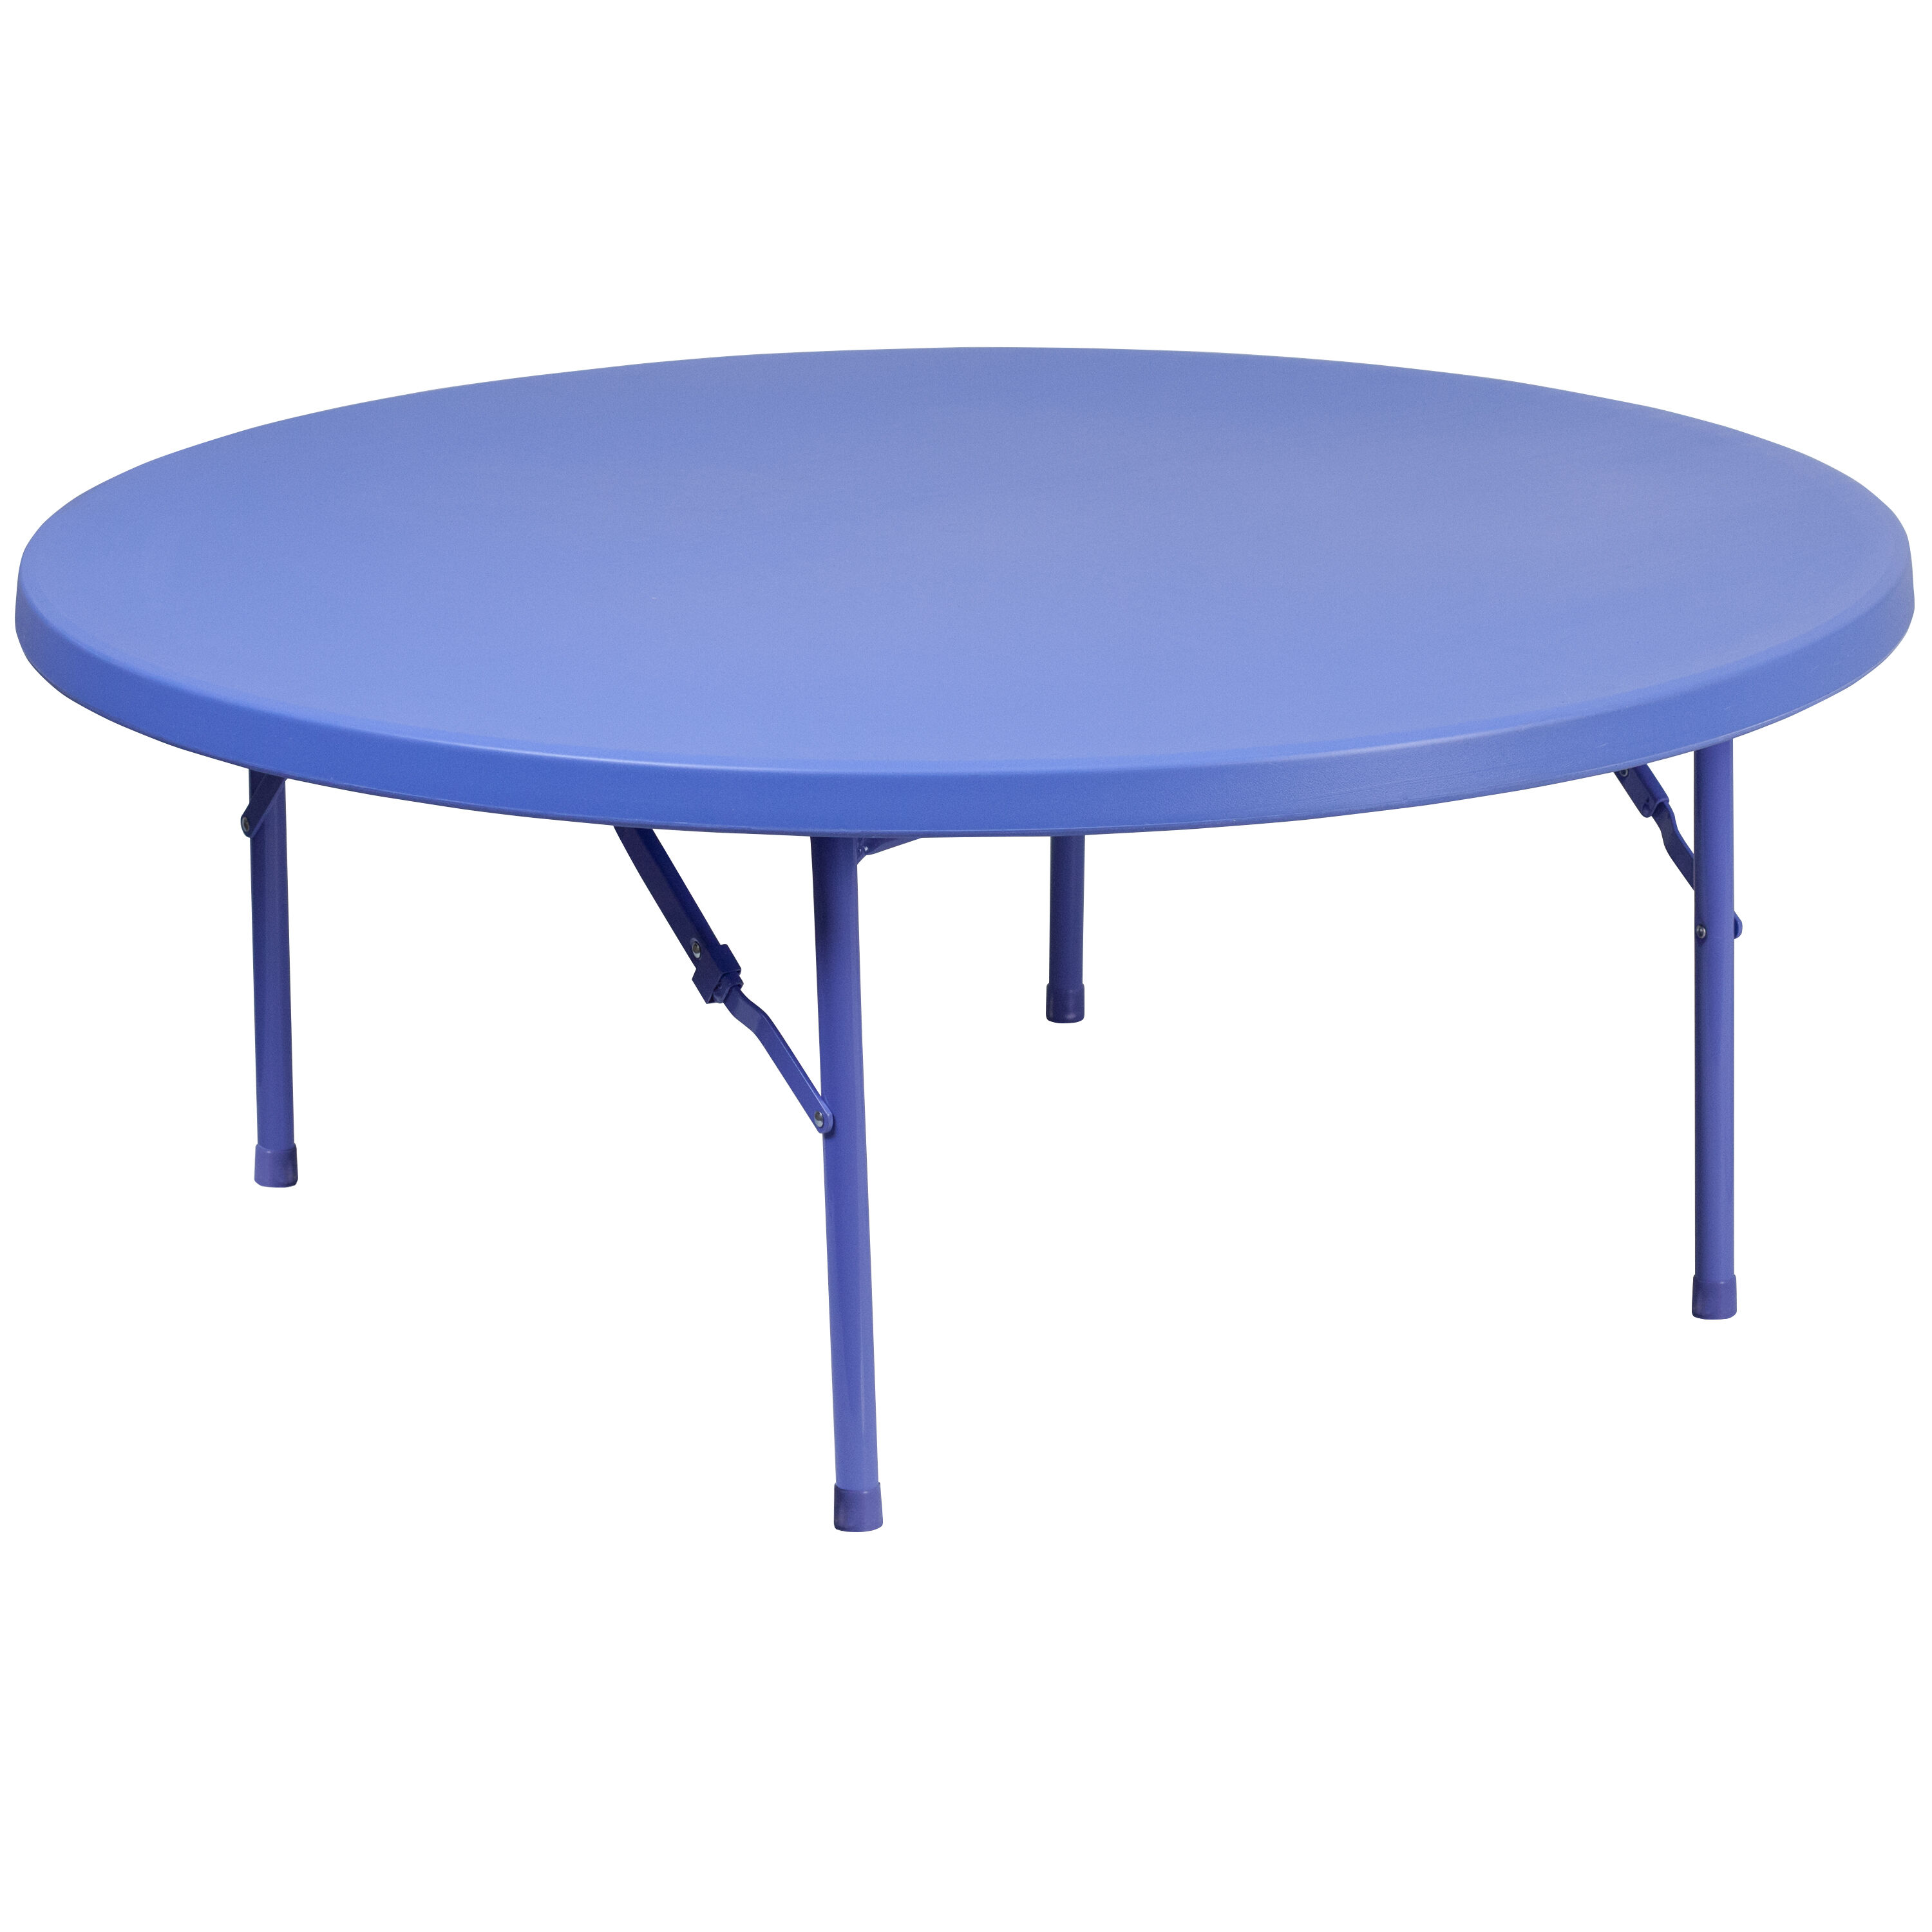 48u0027u0027 Round Kidu0027s Blue Plastic Folding Table